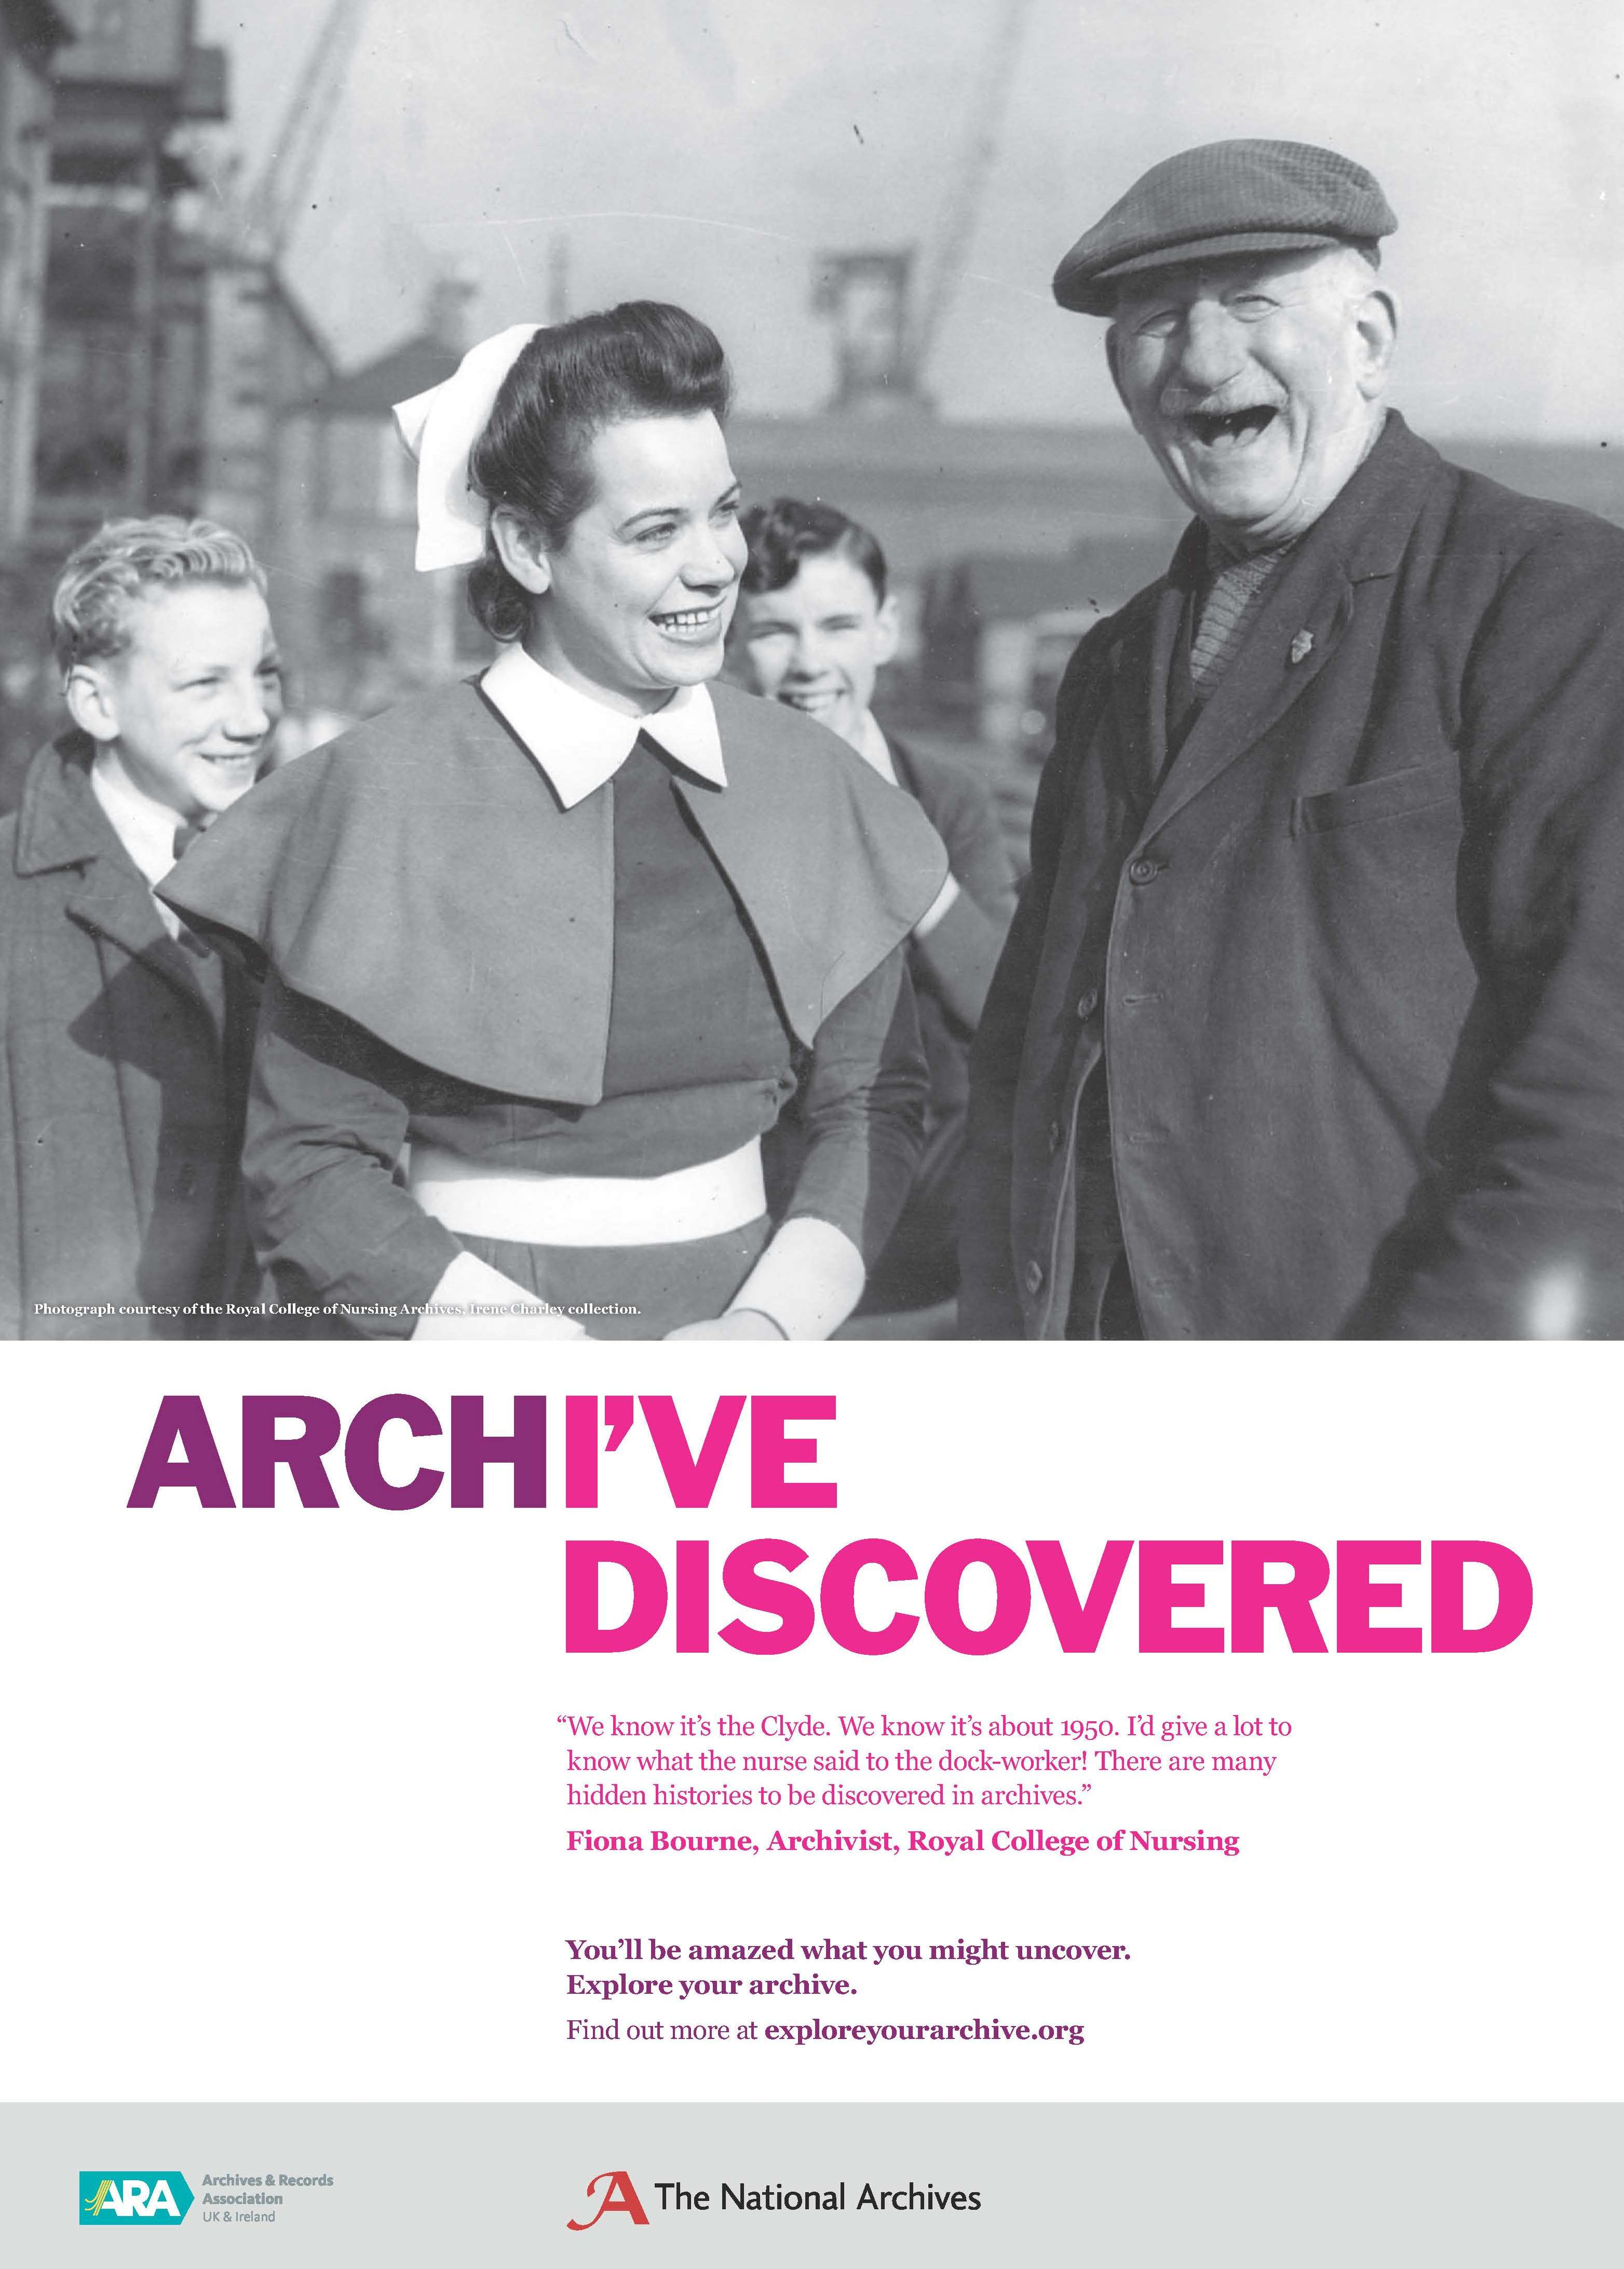 We support the archives campaign